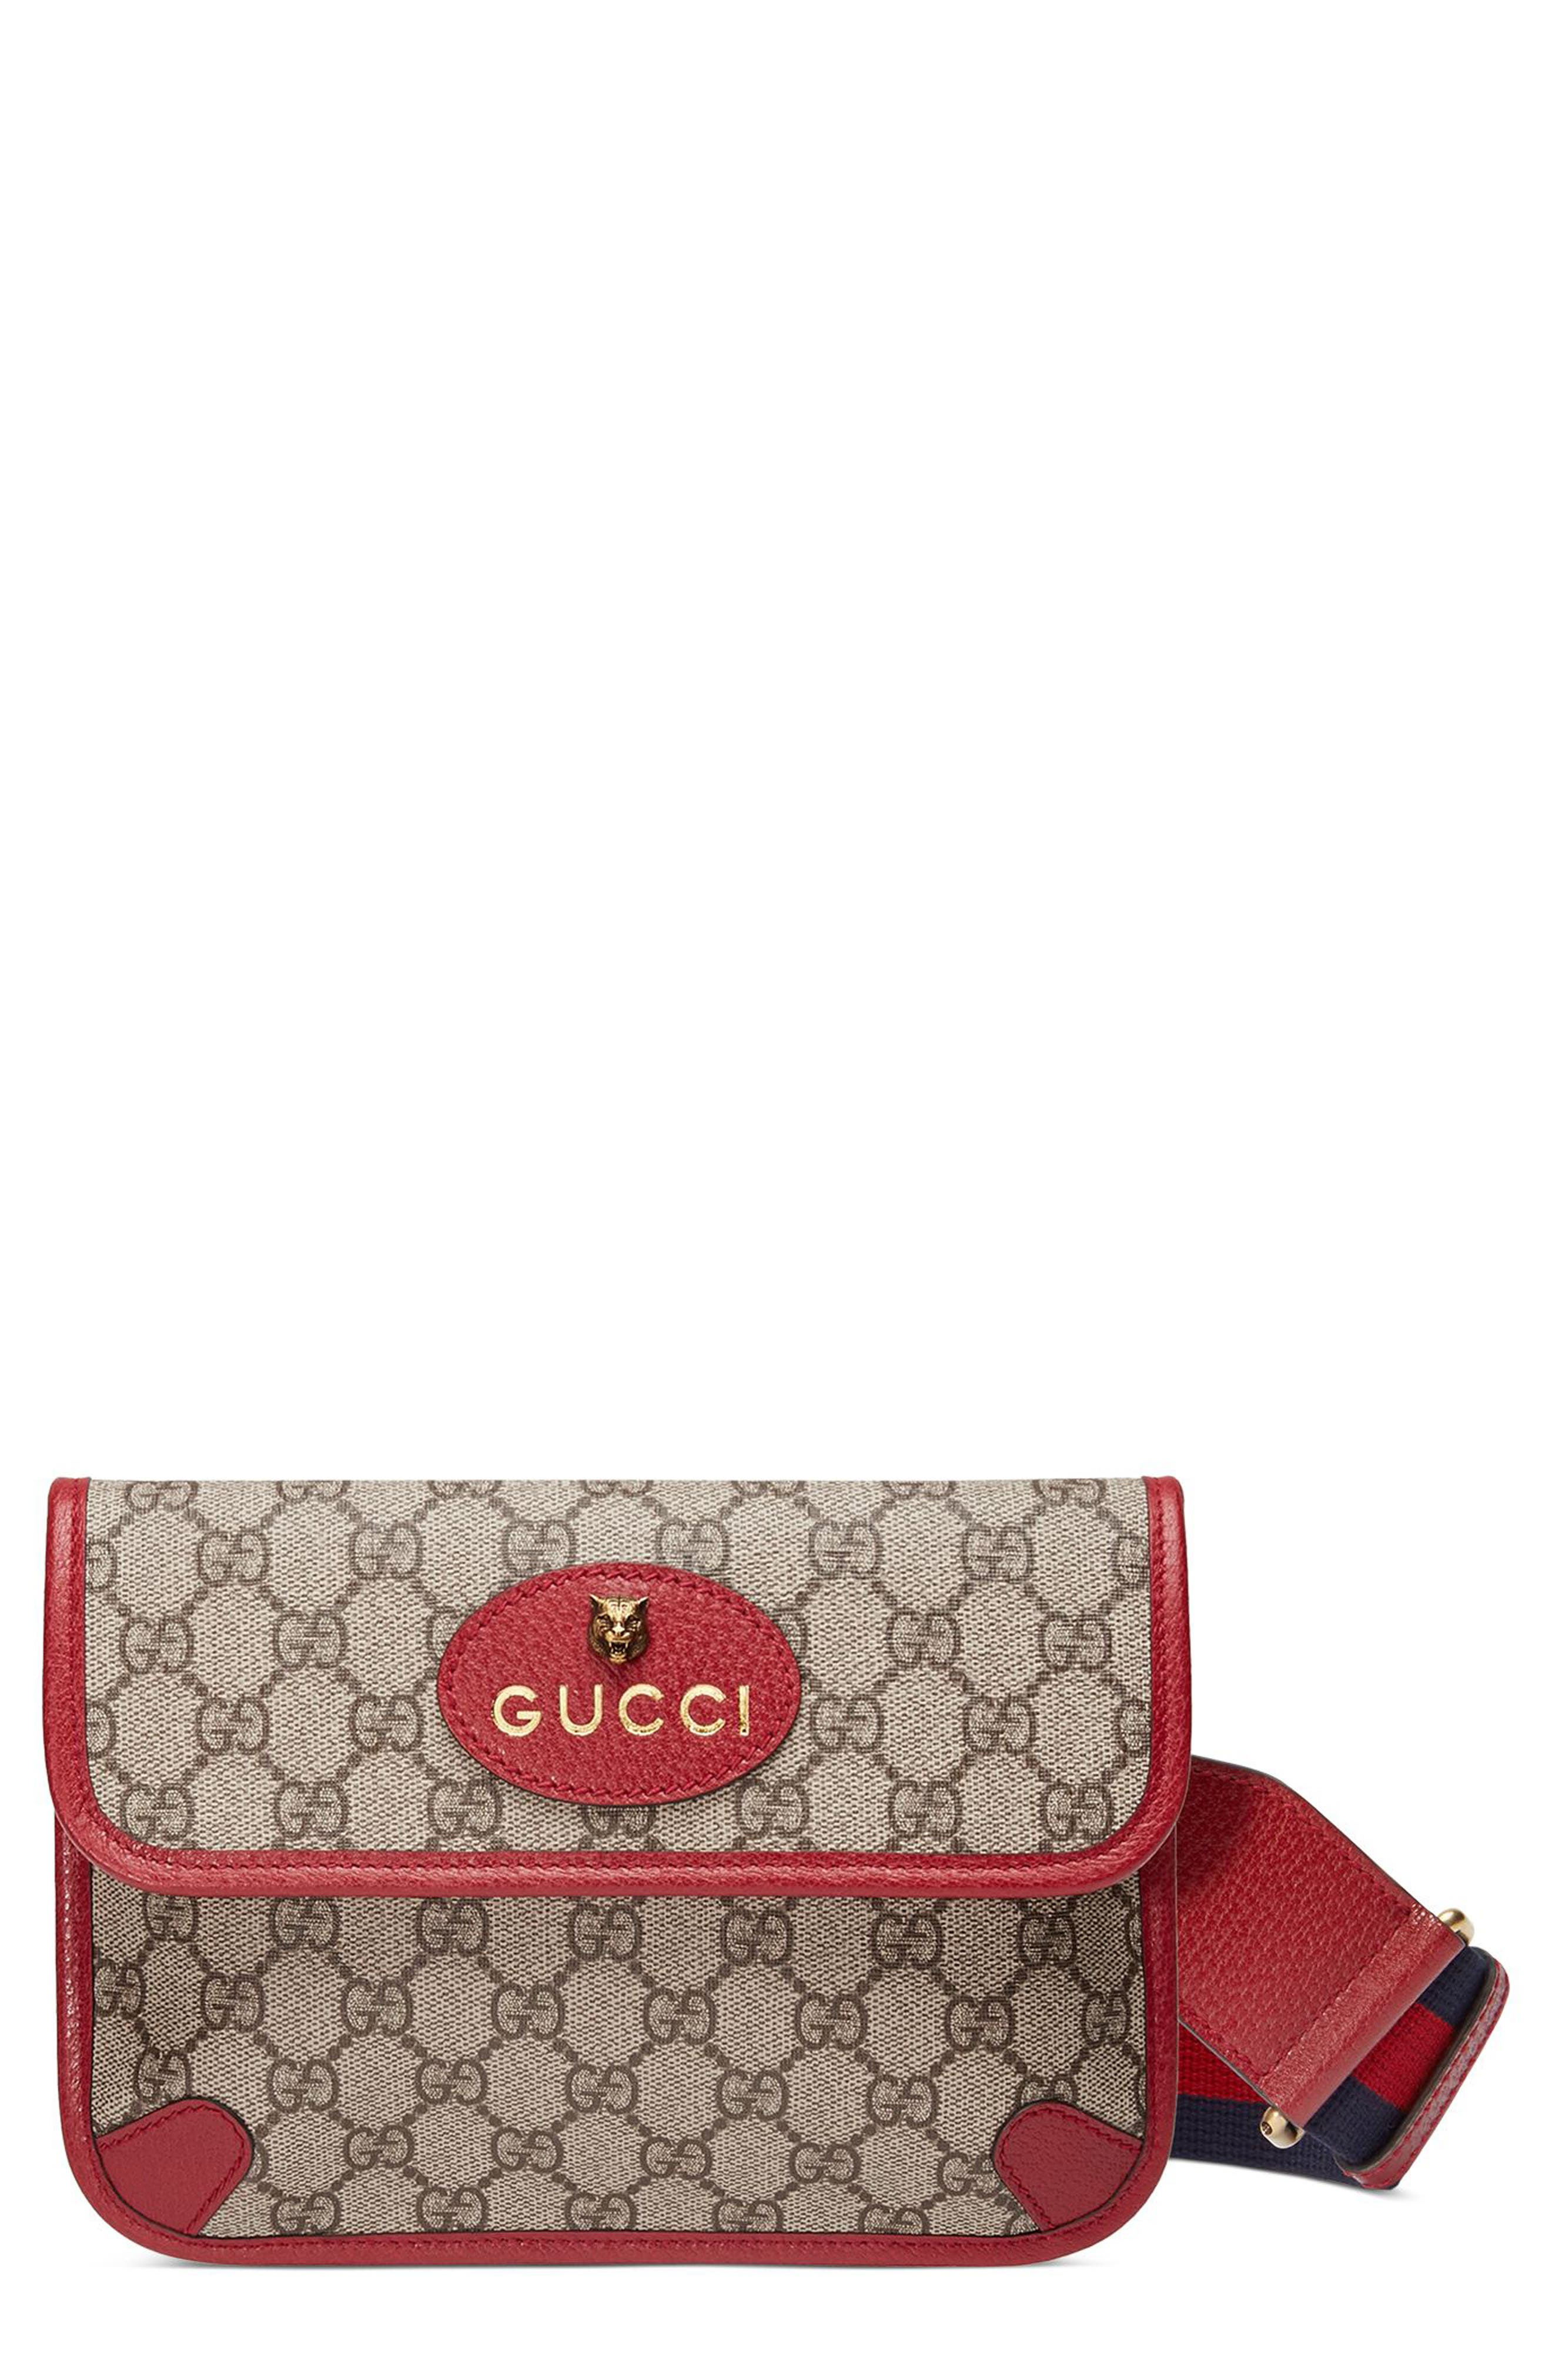 Gucci Totem Four-in-One Leather & Canvas Shoulder Bag